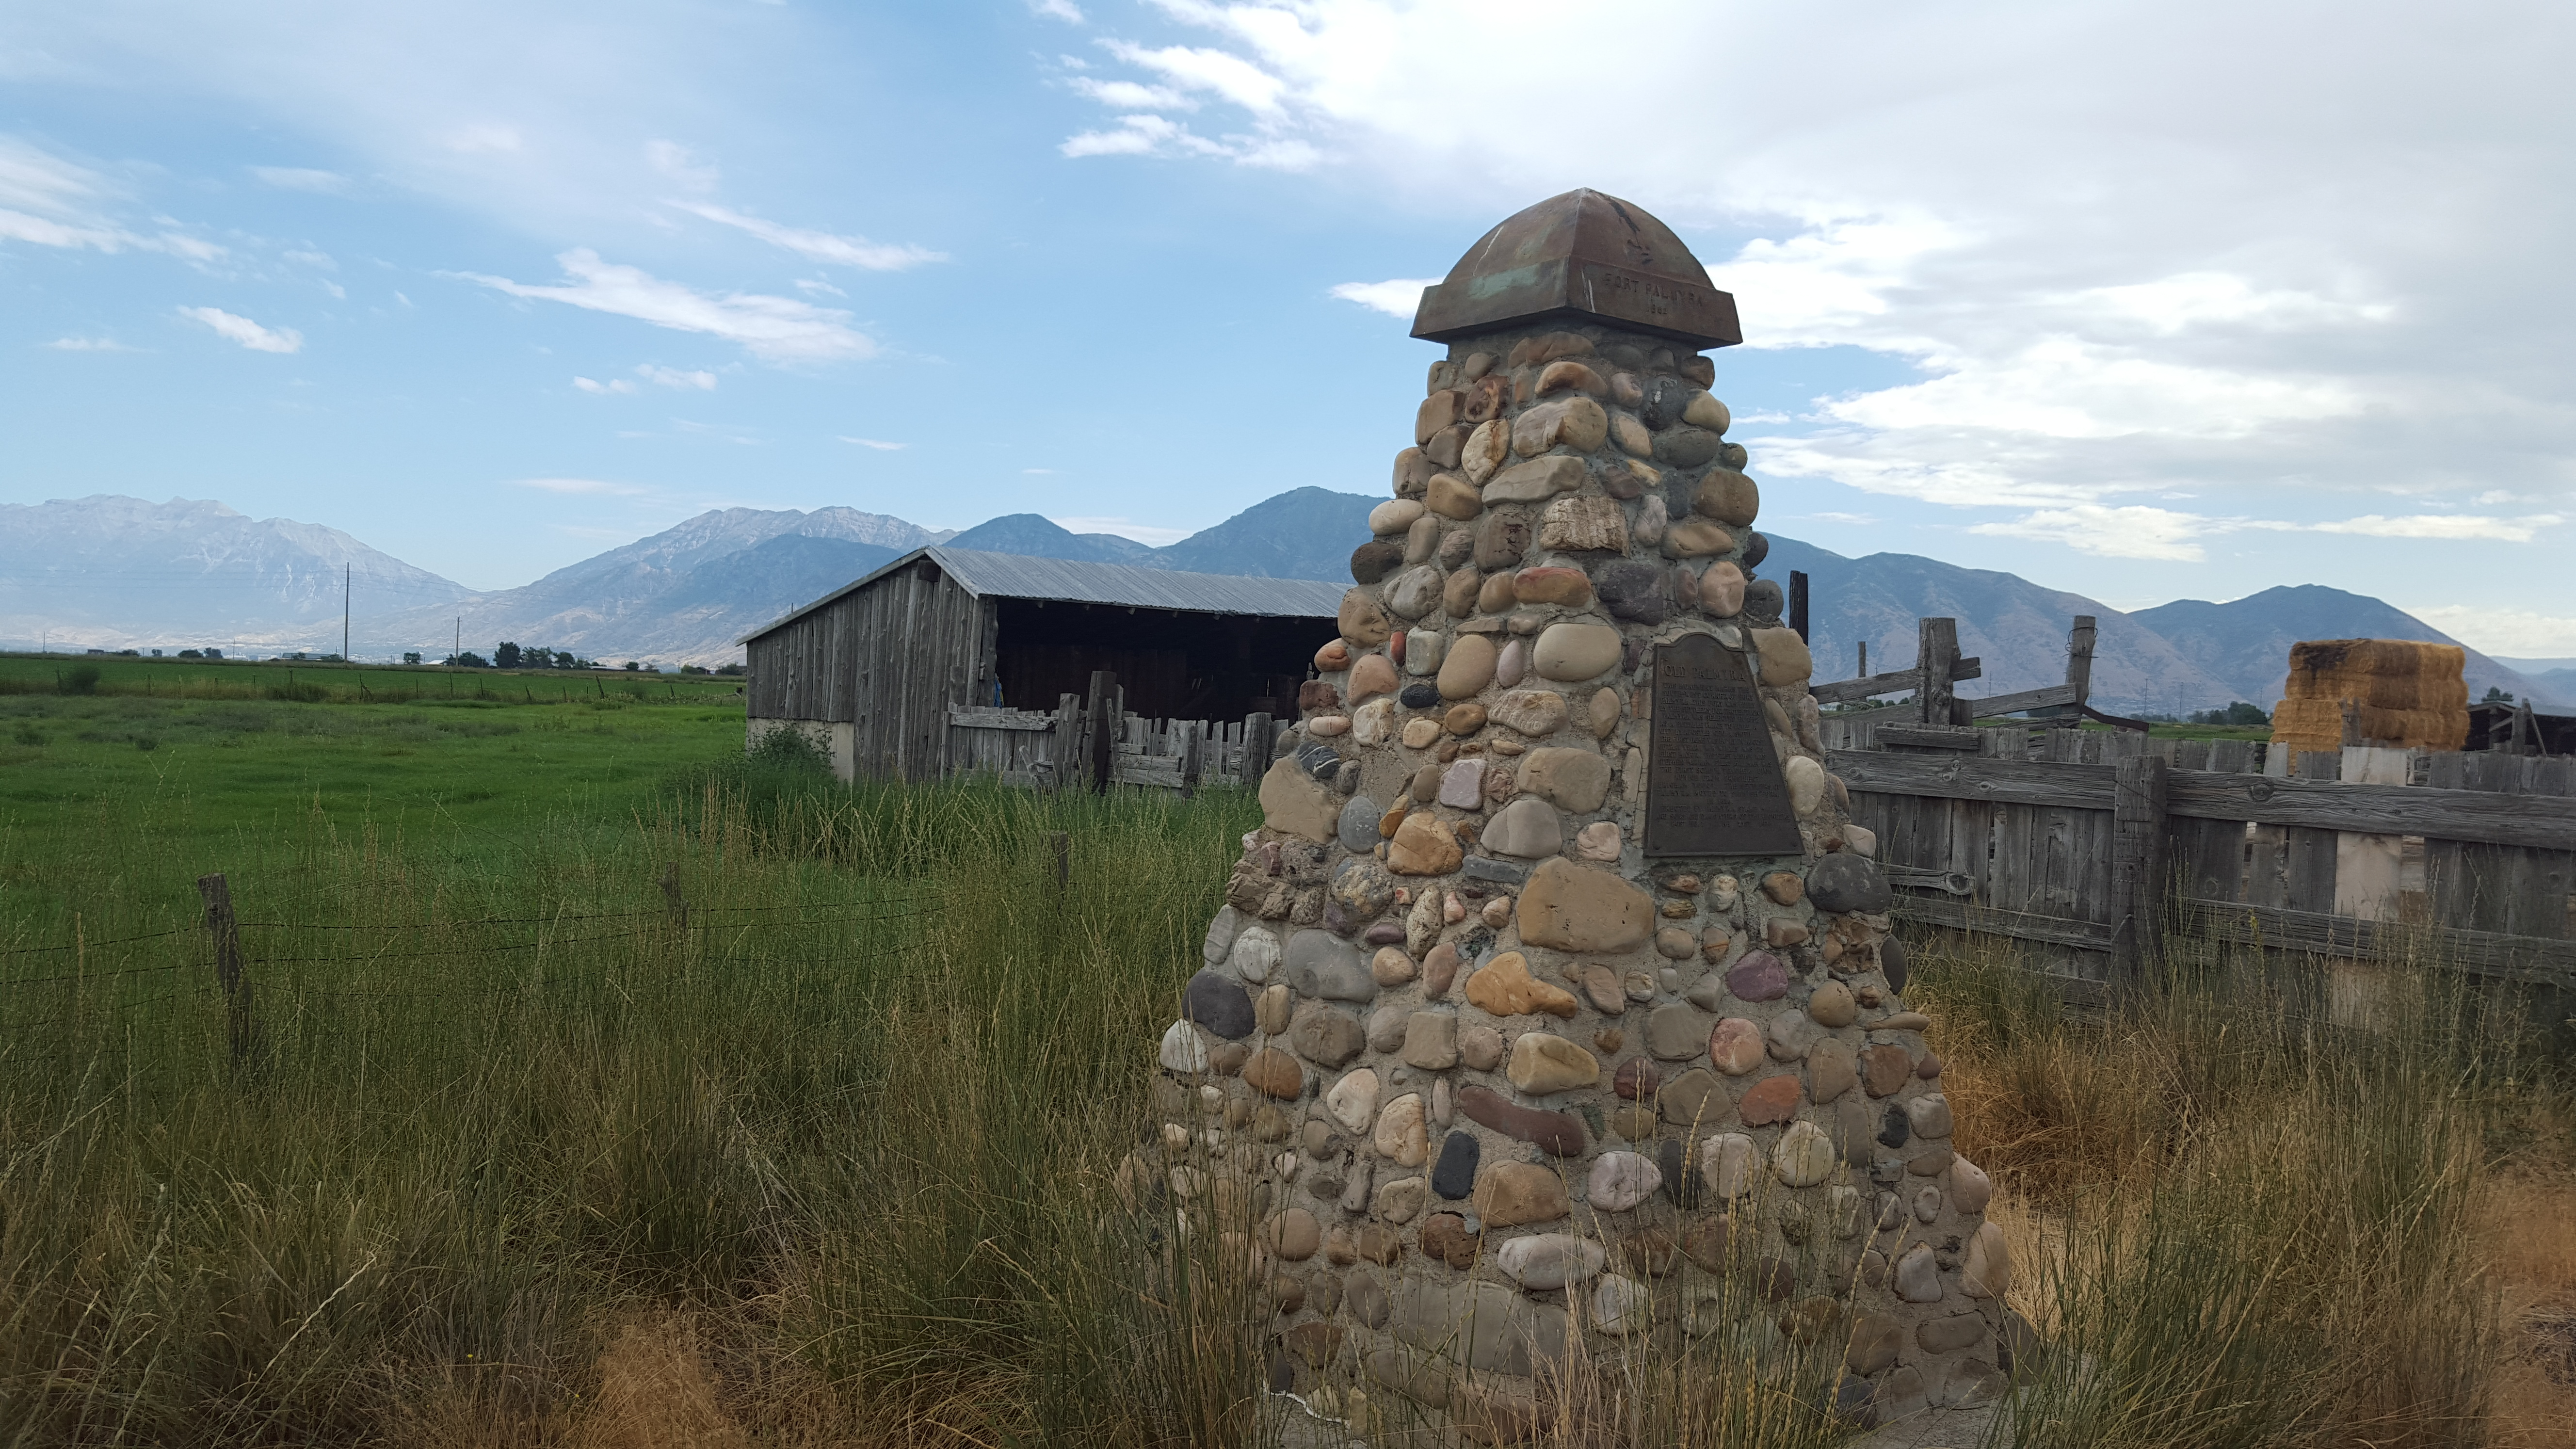 The Fort Palmyra monument near Spanish Fork was recently donated back to Daughters of Utah Pioneers, the original owners.